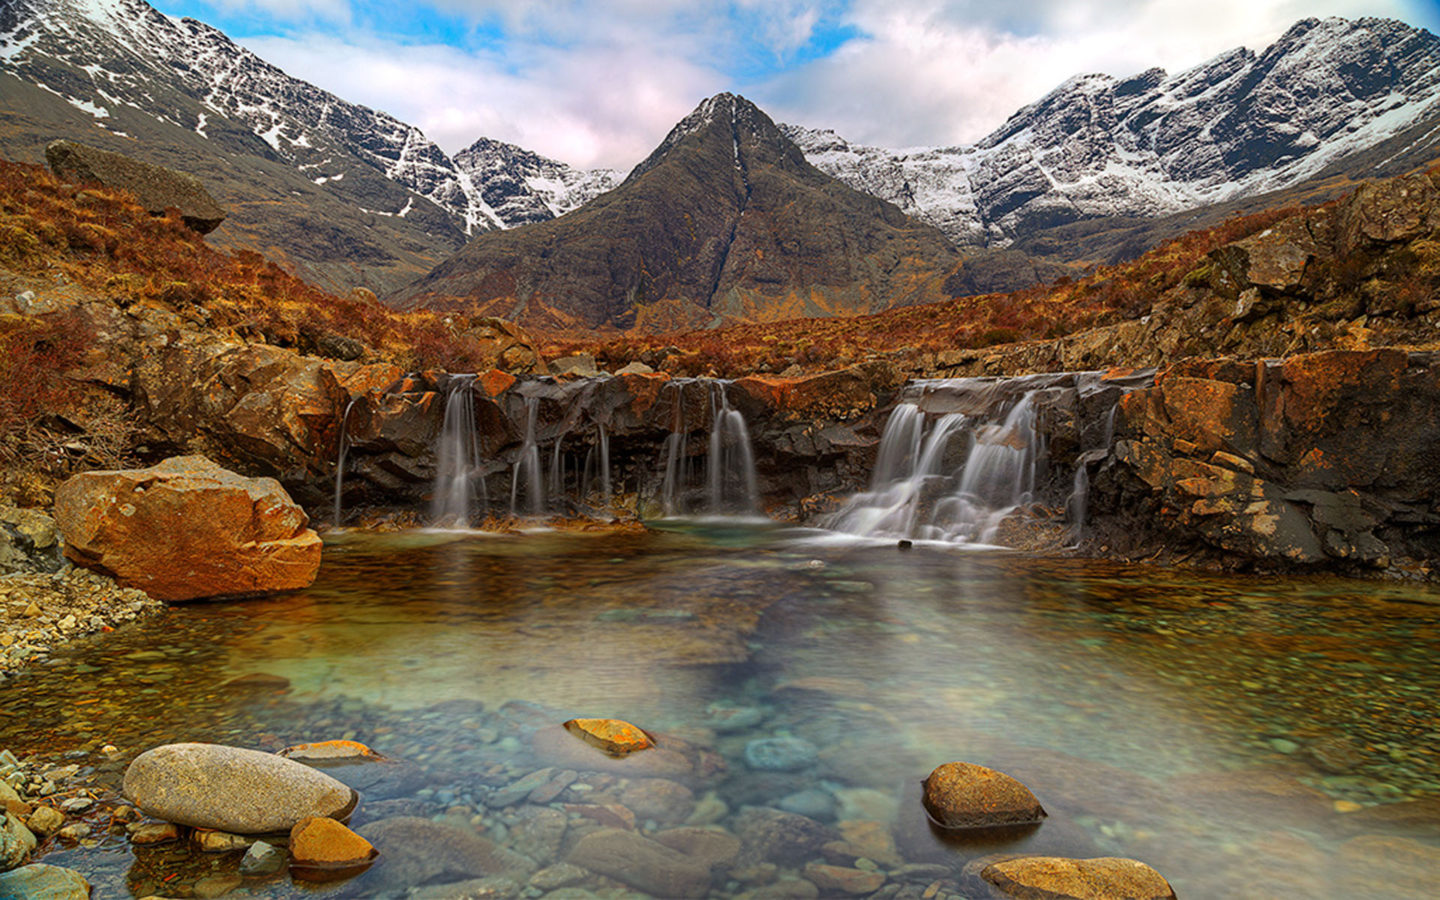 Fall Autumn Hd Wallpaper 1920x1080 Free Fairy Pools Isle Of Skye Scotland Desktop Wallpaper